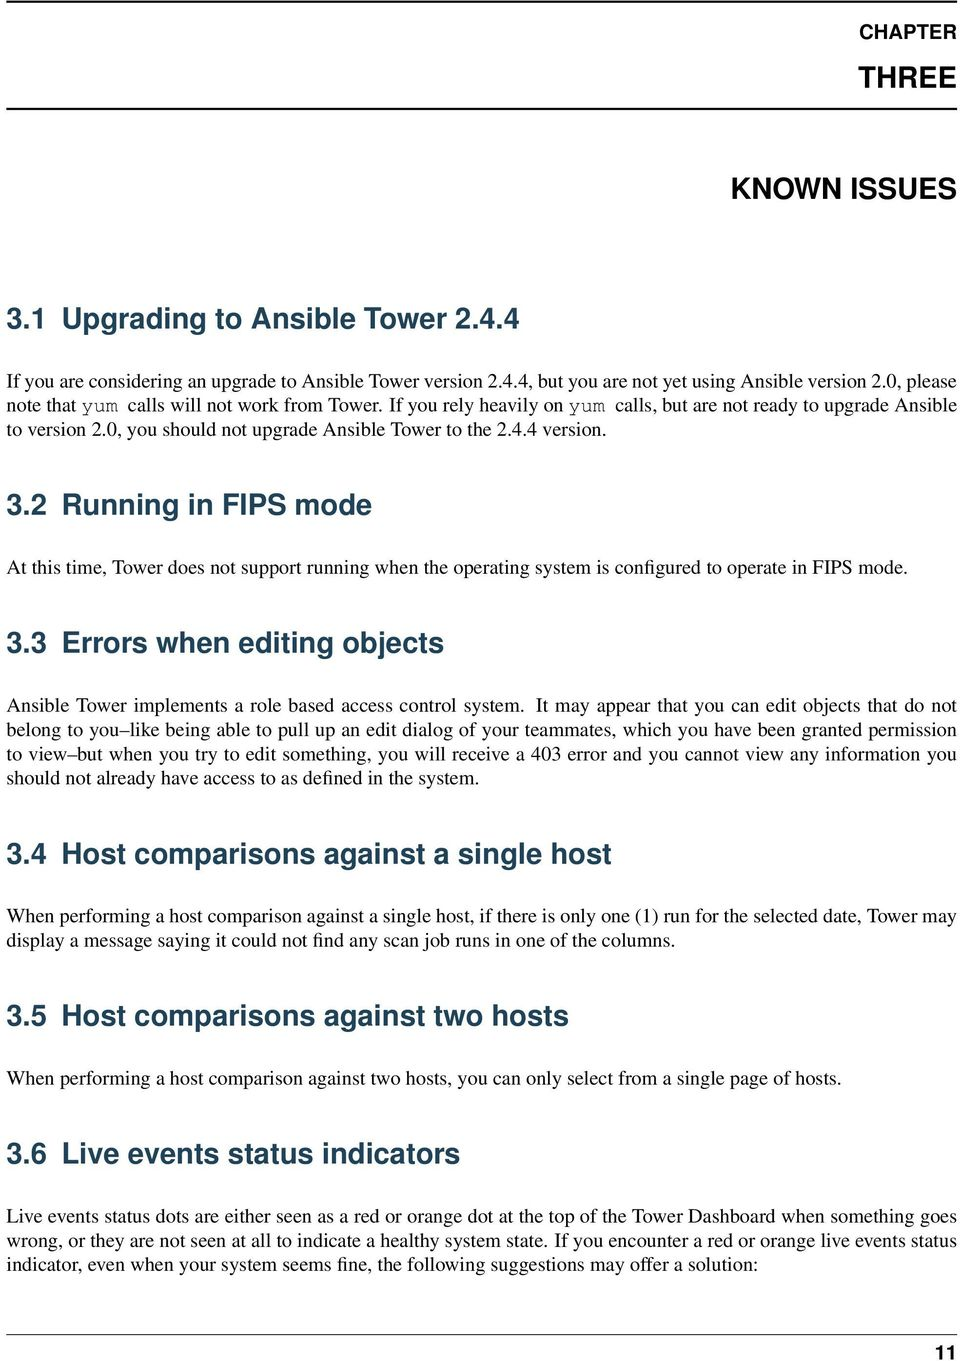 Ansible Tower Installation and Reference Guide - PDF